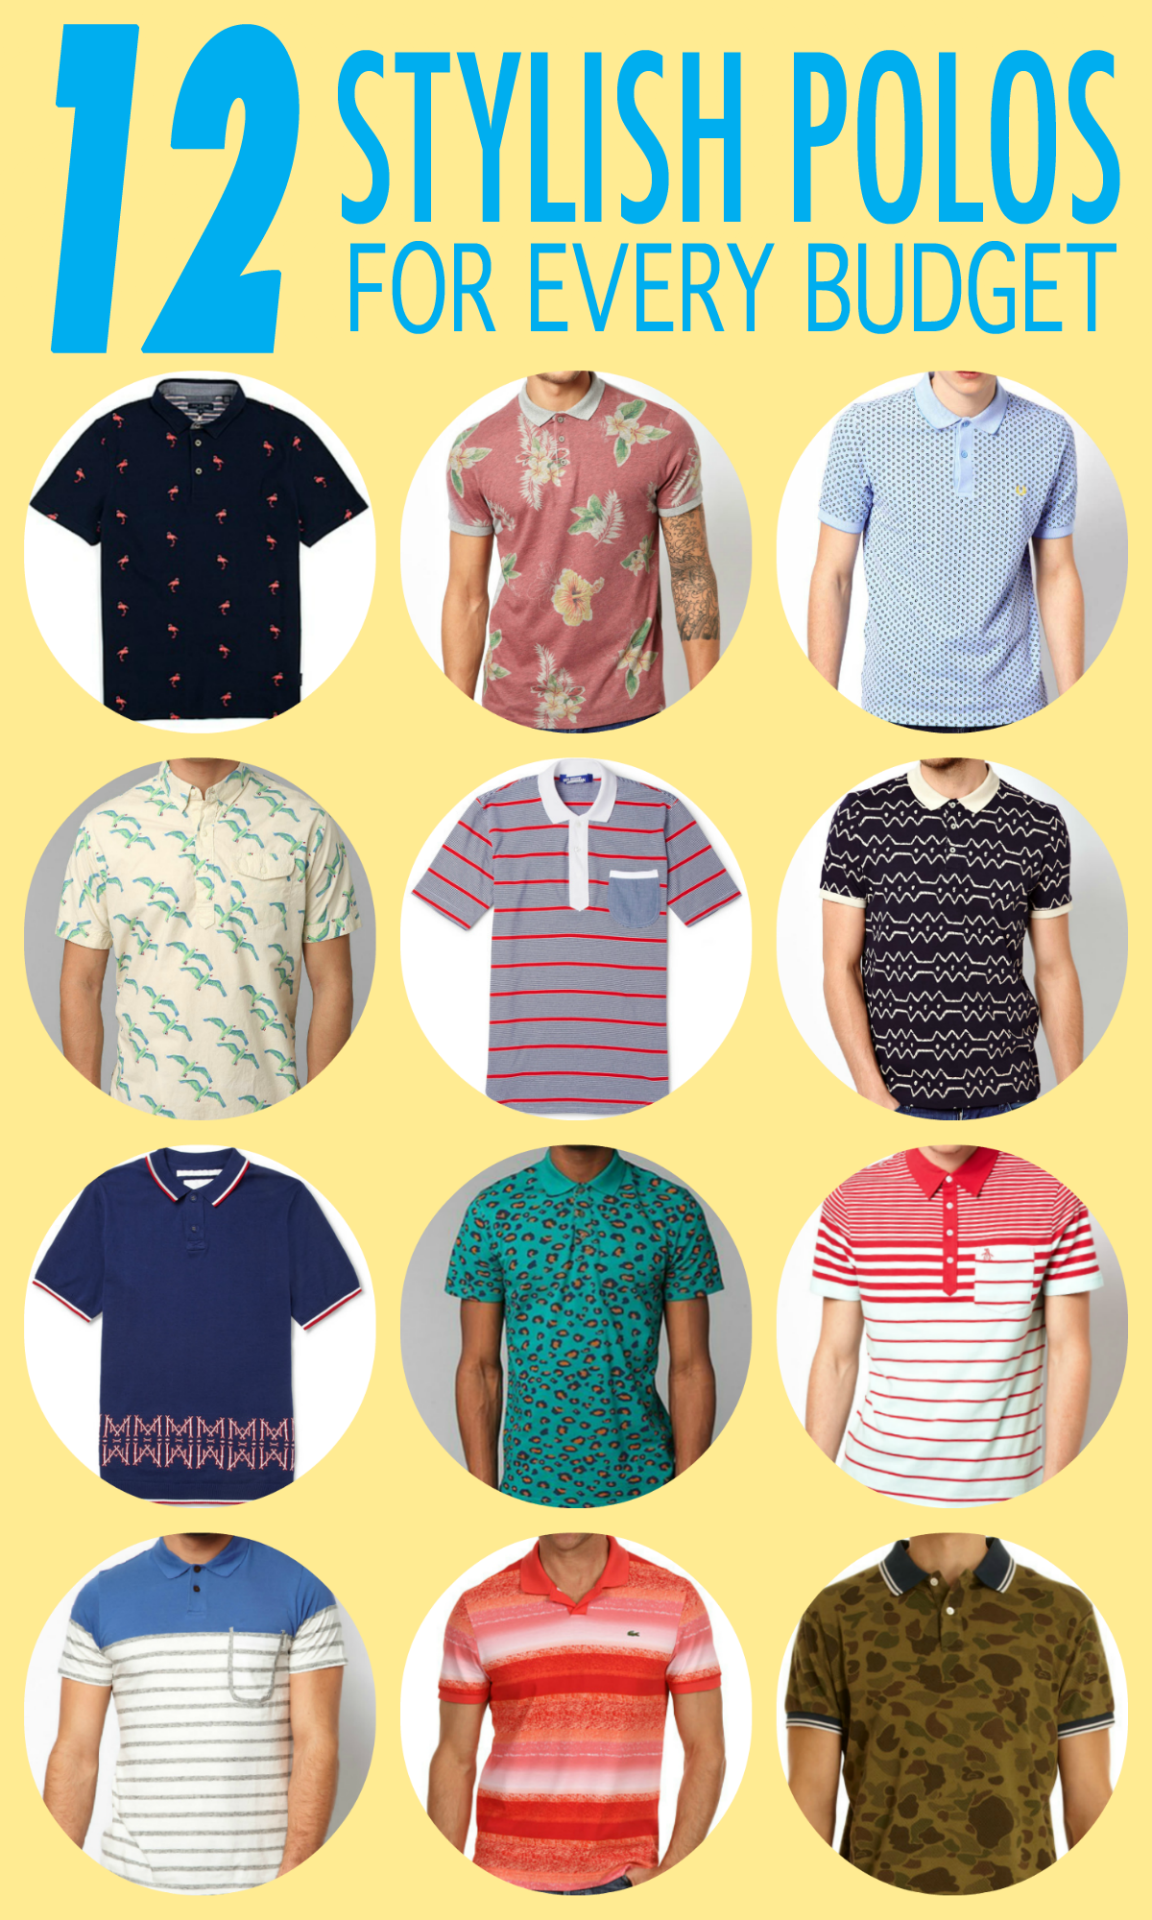 Shopping Guide: Best Men's Polos For 2013 12 Stylish Polos For Every Budget This season the beloved polo has been updated with a modern twist. From a slimmer fit to new color combos and bold designs, this year's polos are definitely not your Dad's classic tennis shirt.  Whether you're ballin or maybe just ballin on a budget (no judging here), I've rounded up a list of my favorites that's sure to help you find a polo to fit your style and your budget. From Top to Bottom, Left to Right Ted Baker Polo Shirt With Flamingo Print ASOS Polo With Red Hawaiian Print Fred Perry Slim Polo with Paisley Print The Tourist By Burkman Bros Seagull Shirt Junya Watanabe Slim-Fit Striped Cotton-Jersey Polo Shirt ASOS Polo With Batik Print Stripe WHITE MOUNTAINEERING Knitted Cotton Polo Shirt BDG Cheetah Polo Shirt Original Penguin Polo with Stripe Paul Smith Polo with Half Stripe Lacoste Ocean Print Johnny Collar Polo Shirt Gant By Michael Bastian Perforated Camo Polo     FACEBOOK | TWITTER | BLOGLOVIN | PINTEREST | LOOKBOOK